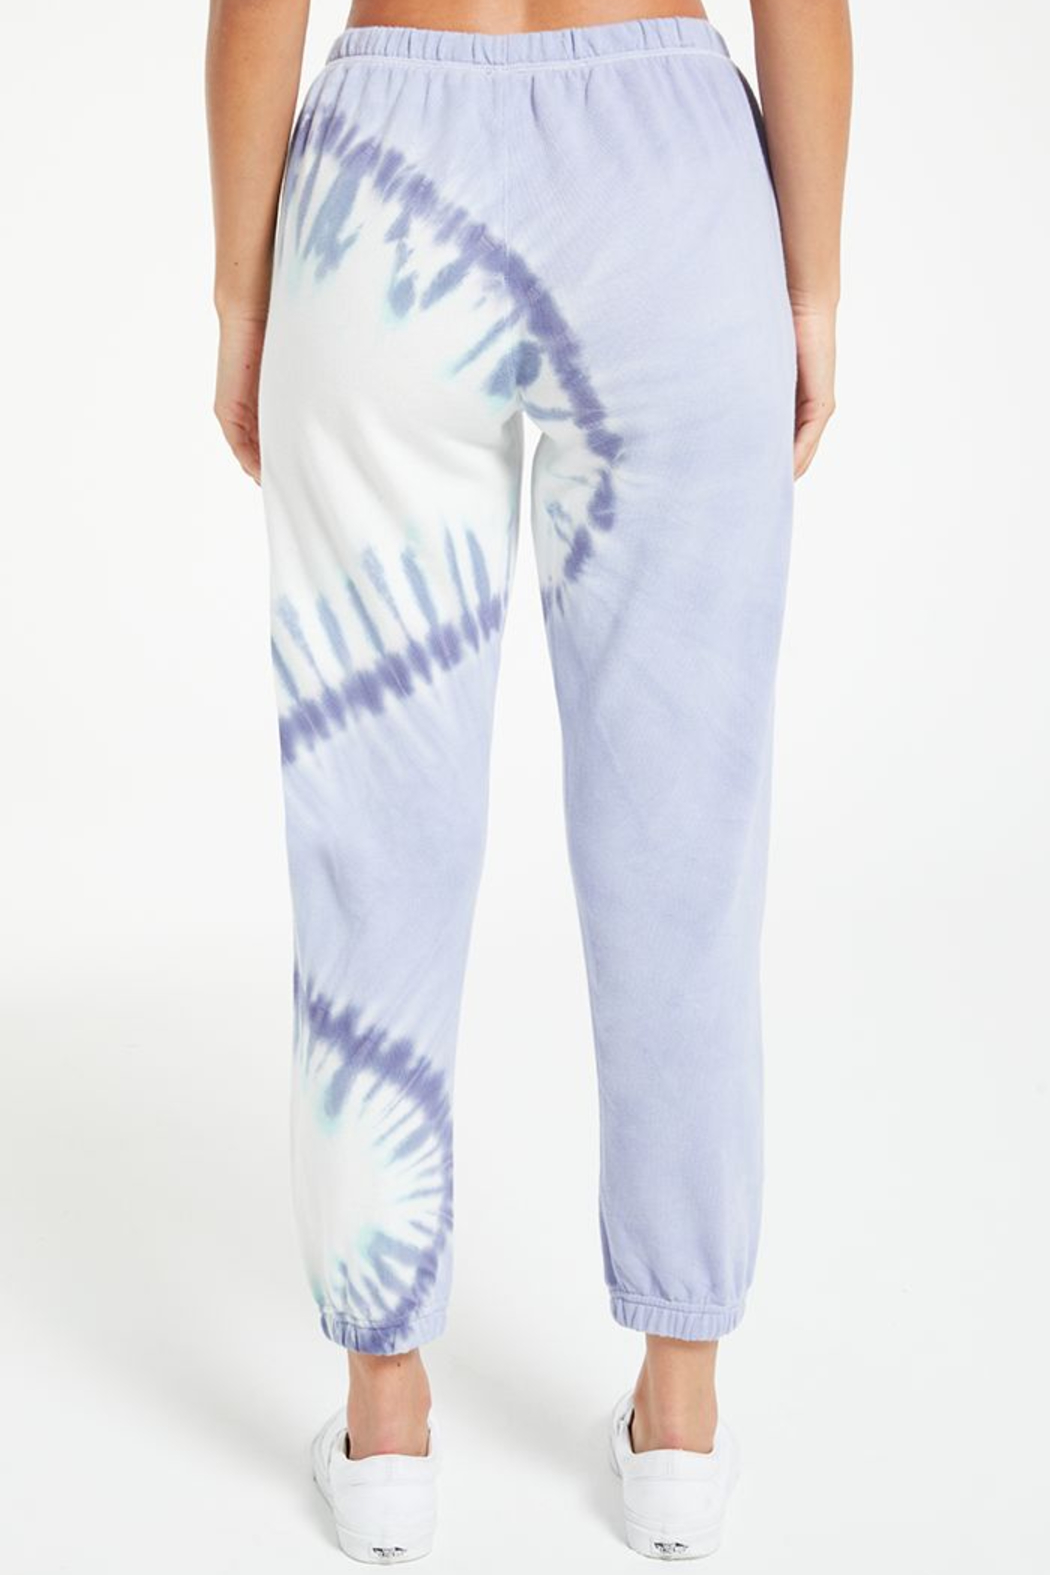 z supply Sunburst tie dye jogger - Side Cropped Image